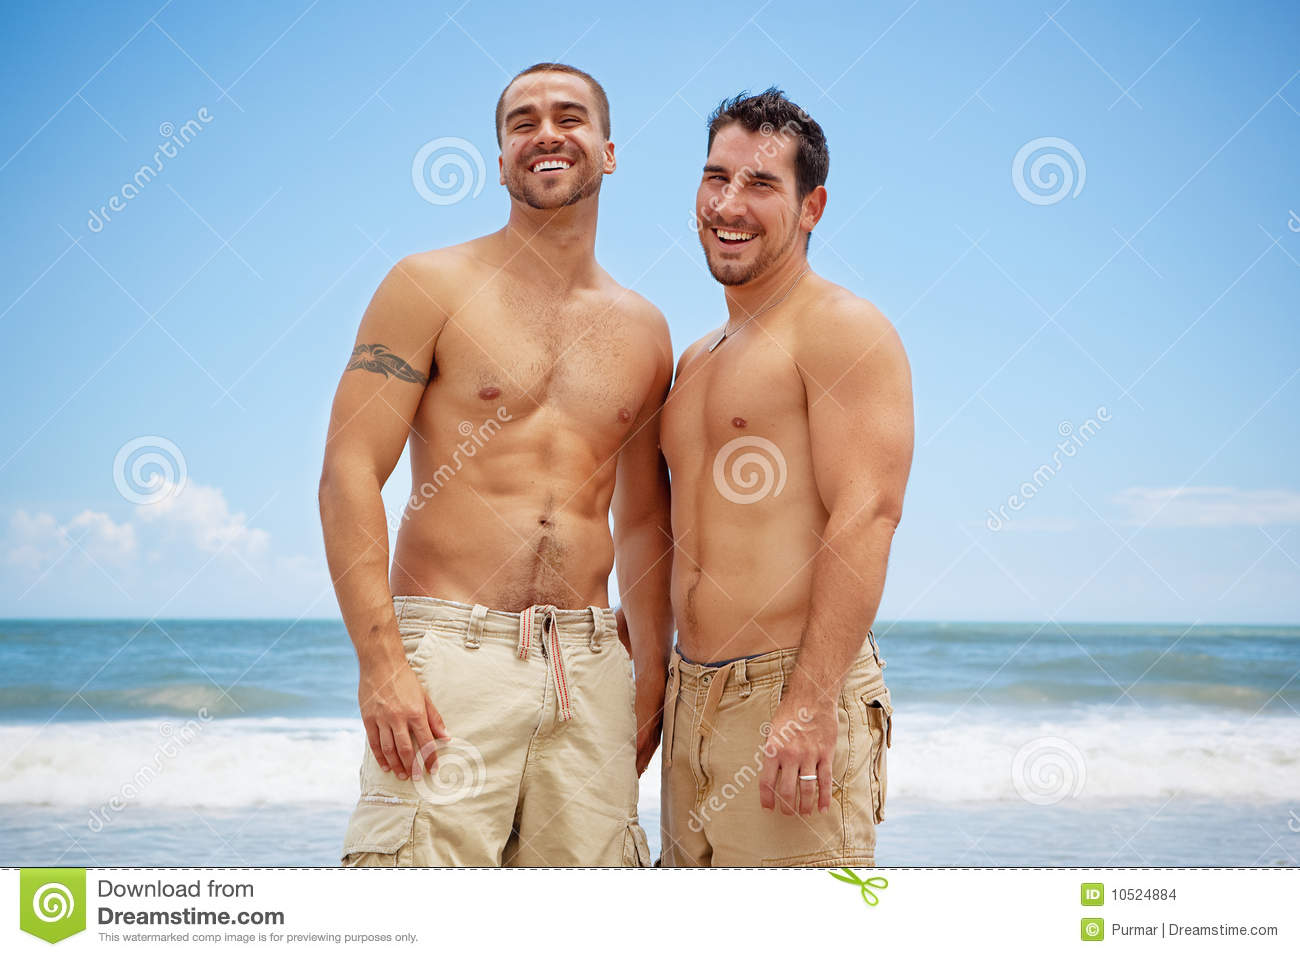 gay professionals dating